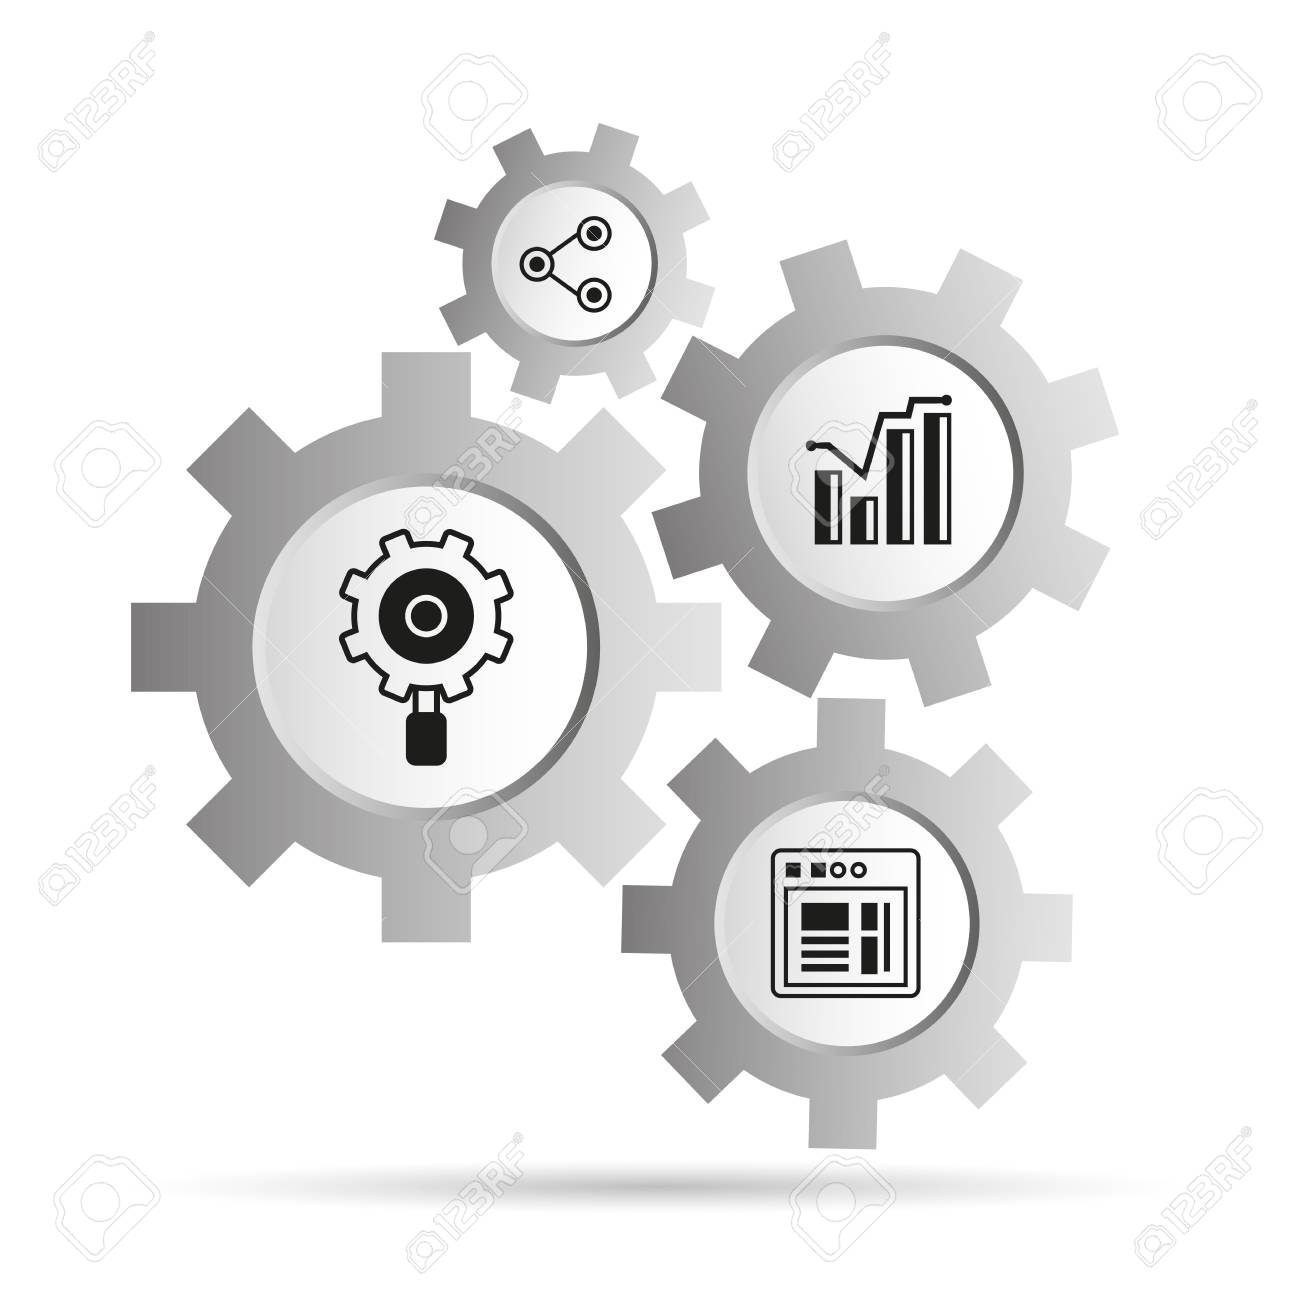 data analytics concept icons in gears diagram illustration  stock vector -  97475410